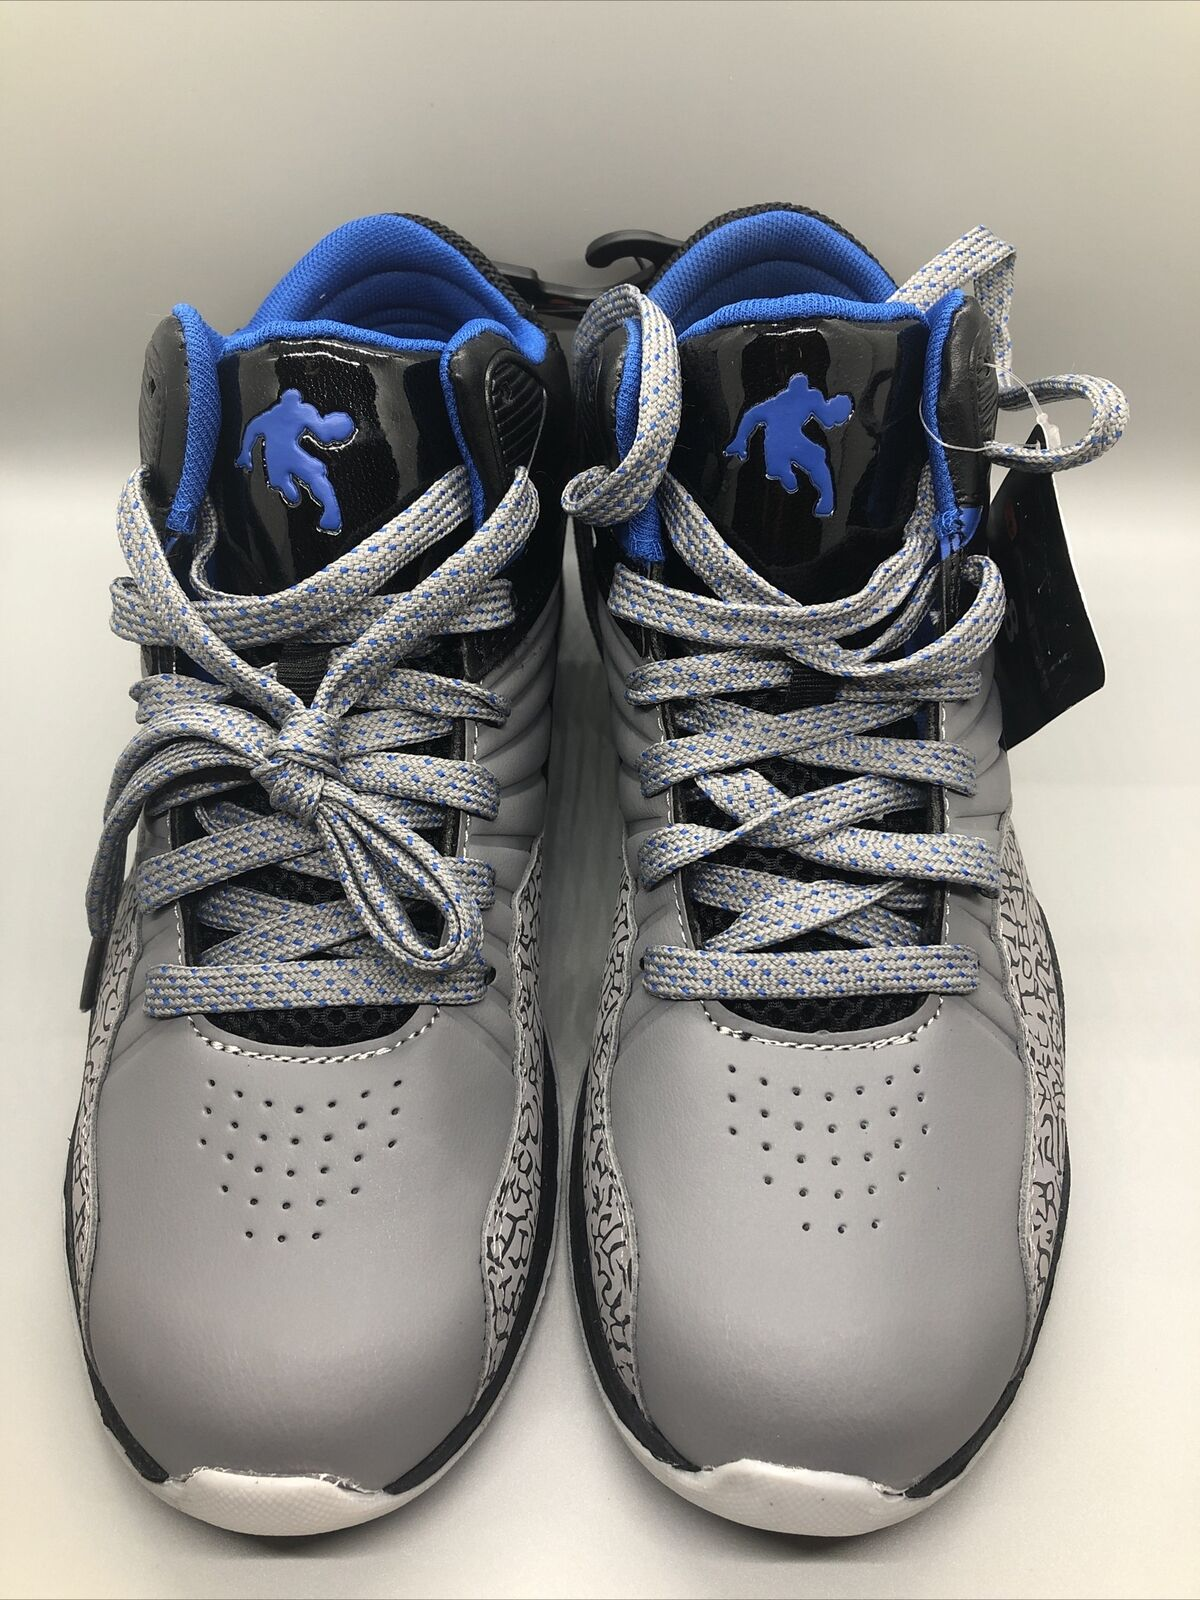 AND1 Men's Capital 4.0 Basketball Shoe Size 8,  New With Tags Blue And Grey on eBay thumbnail